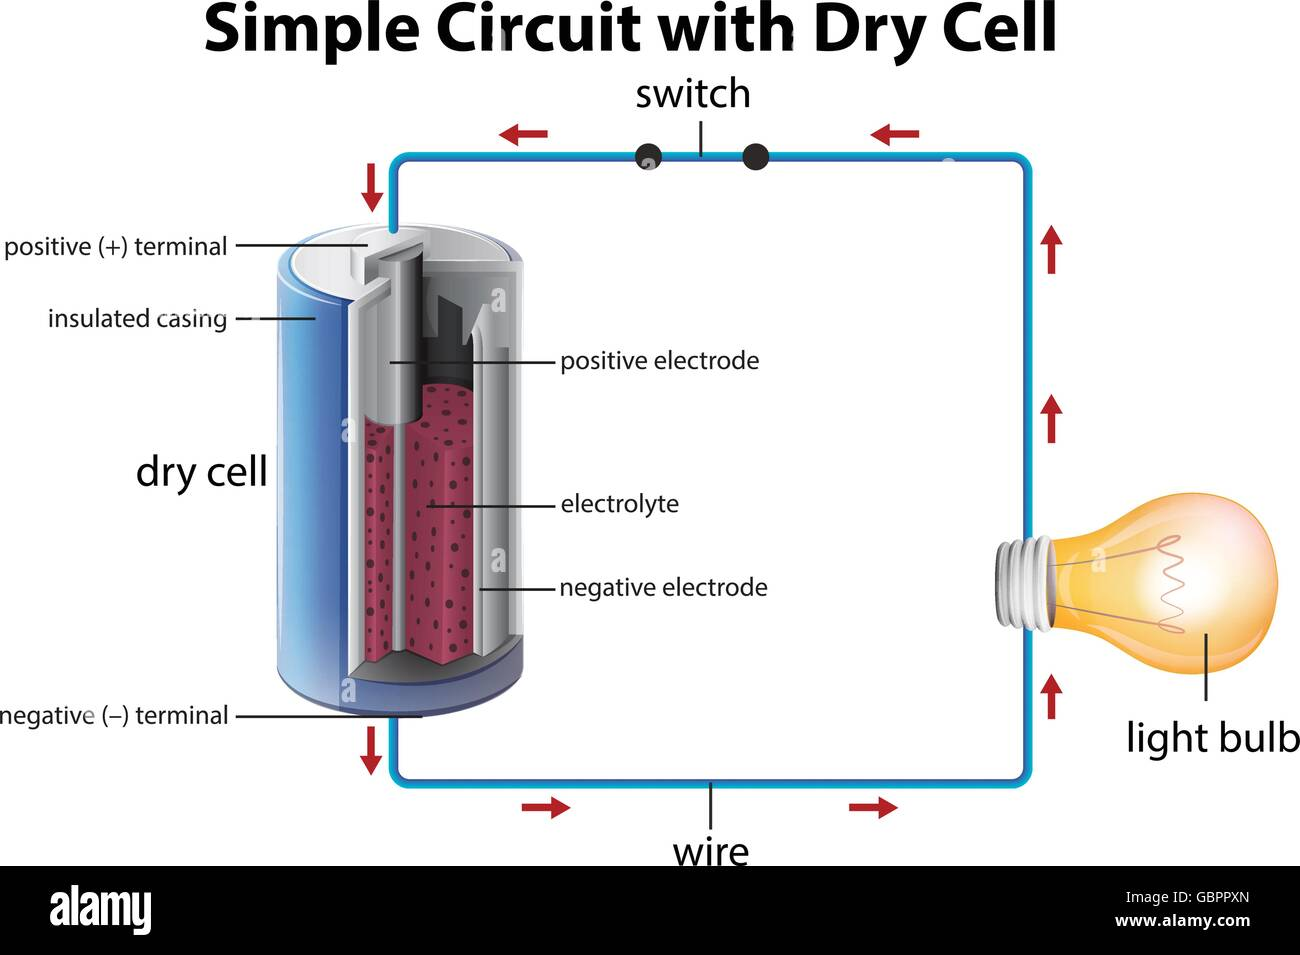 Diagram Showing Simple Circuit With Dry Cell Illustration